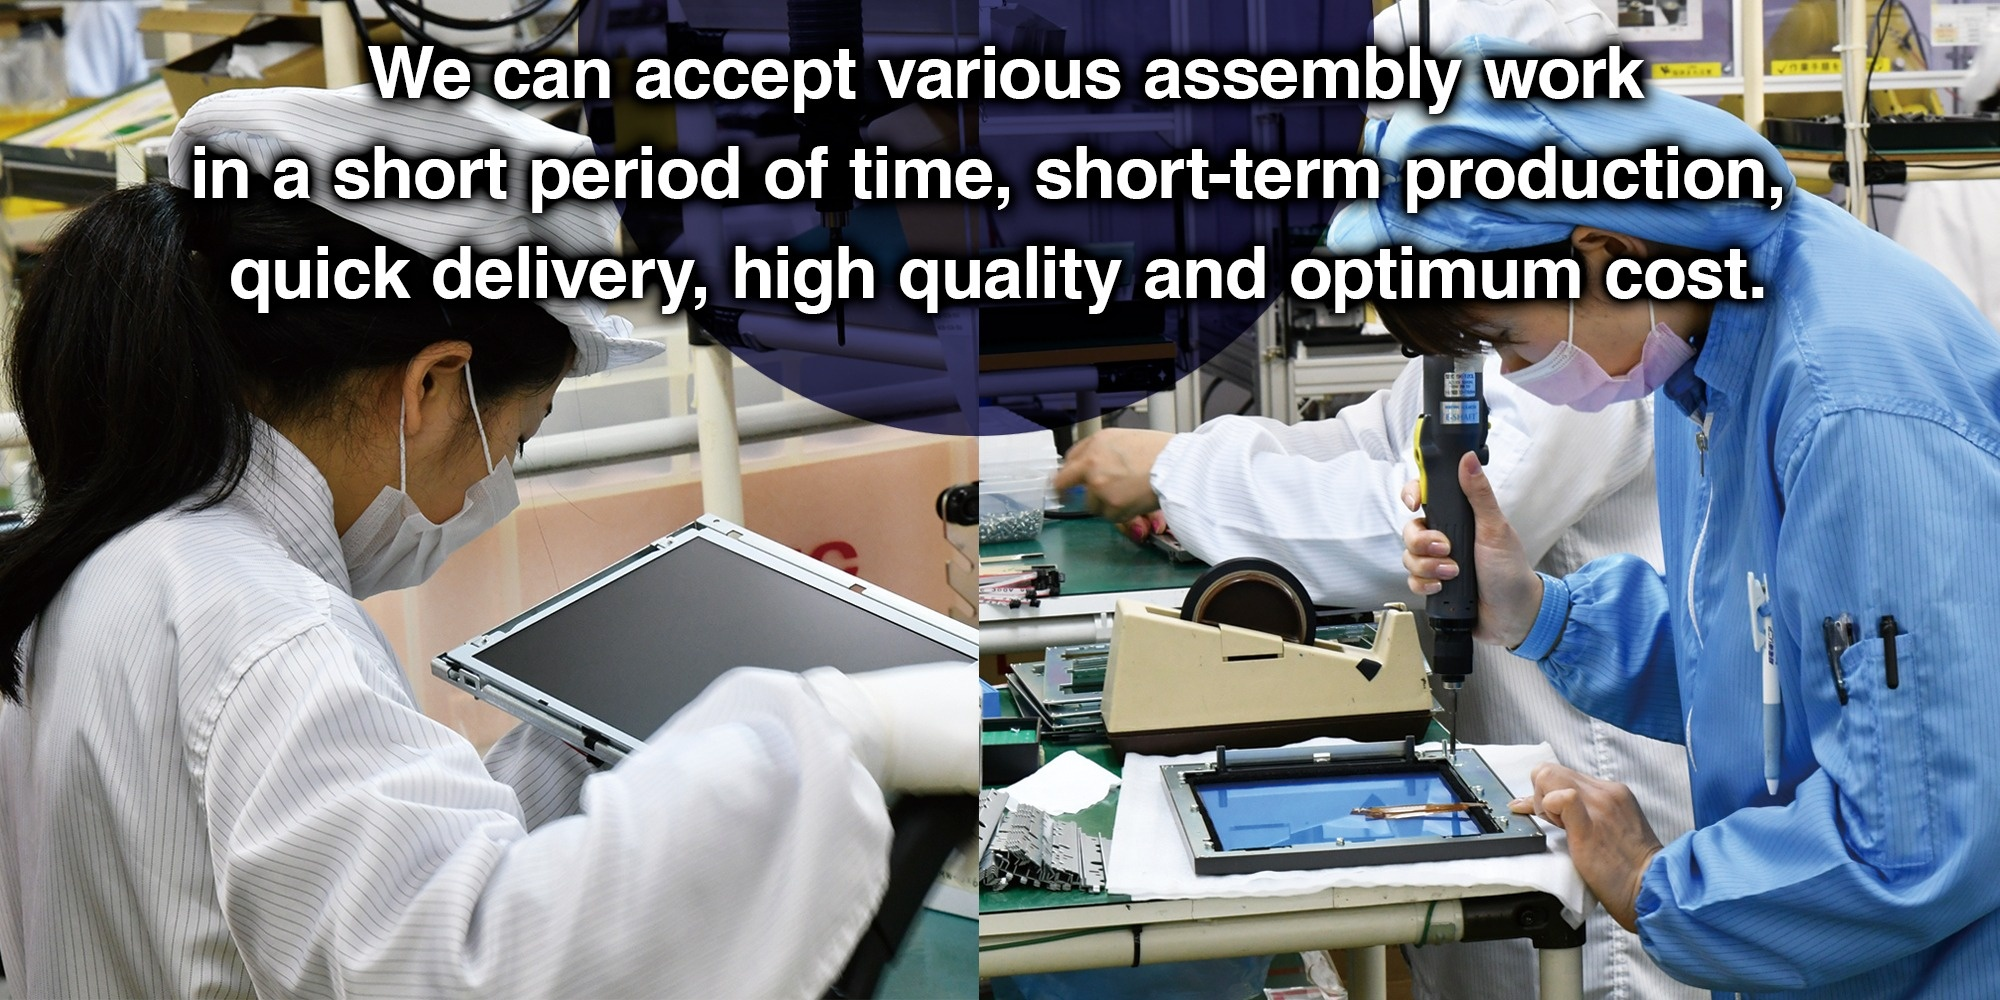 We can accept various assembly work in a short period of time, short-term production, quick delivery, high quality and optimum cost.